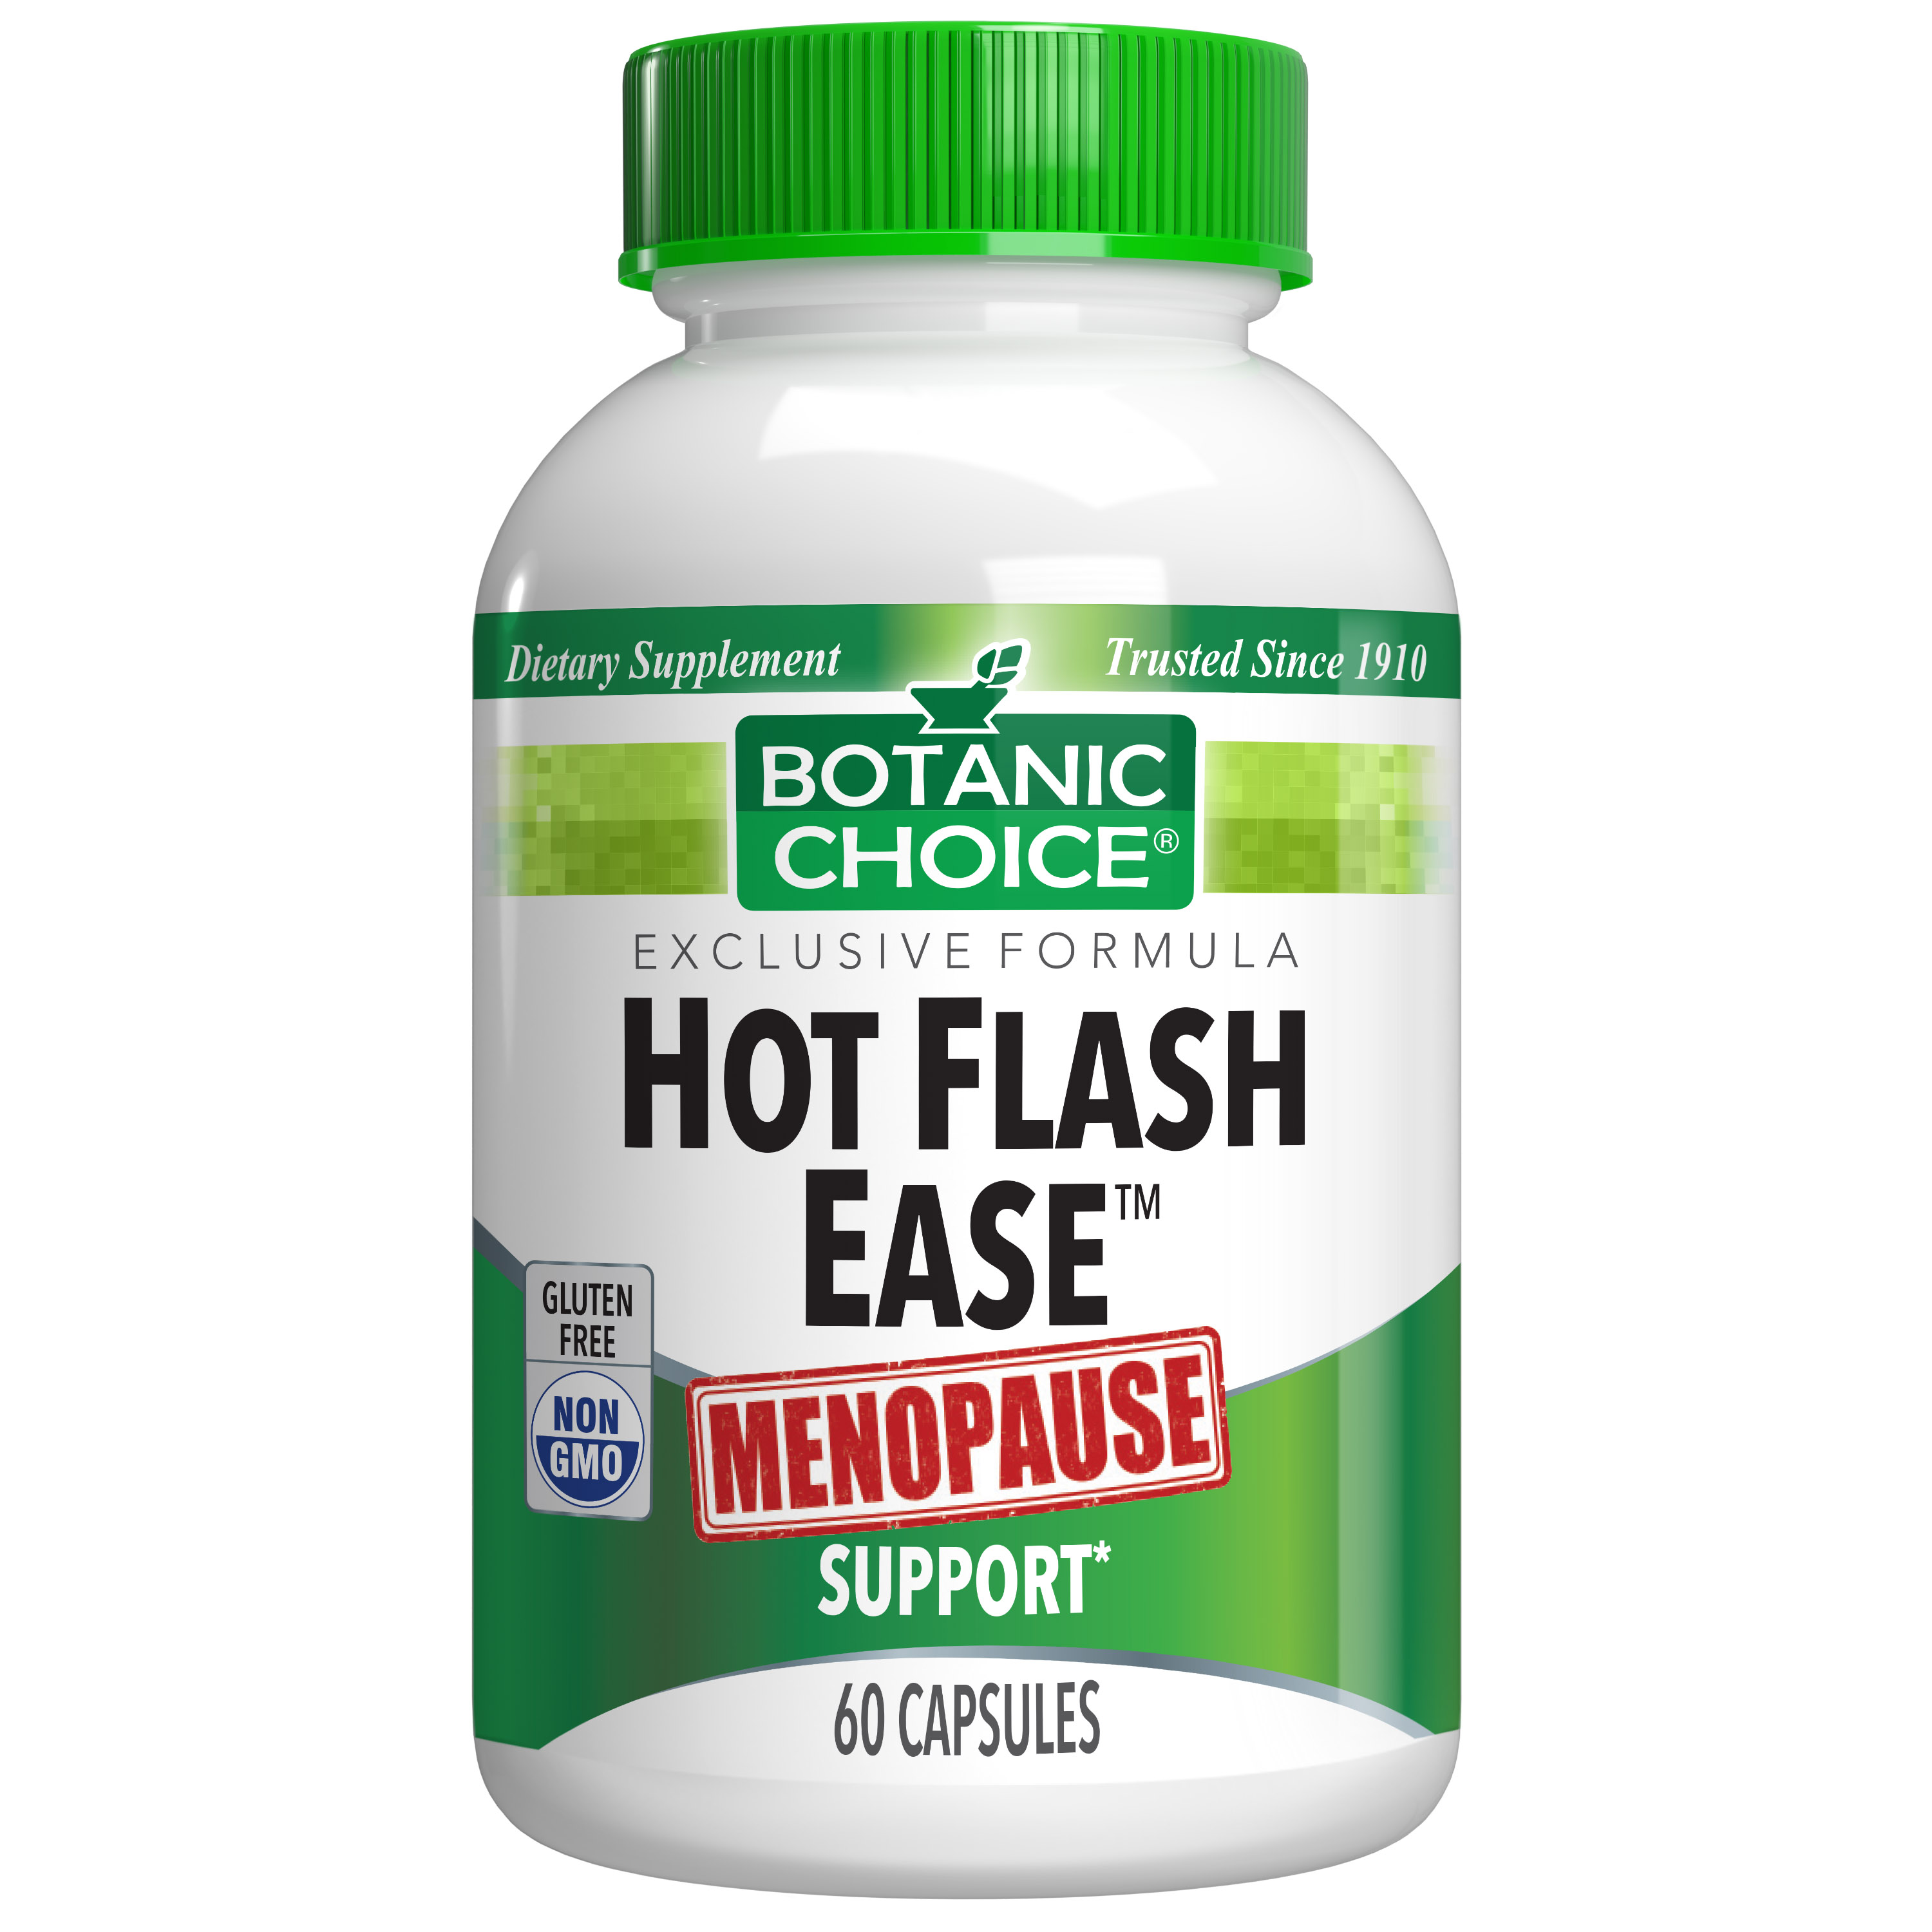 Botanic Choice Hot Flash Ease™ - Menopause Support Supplement - 60 Capsules